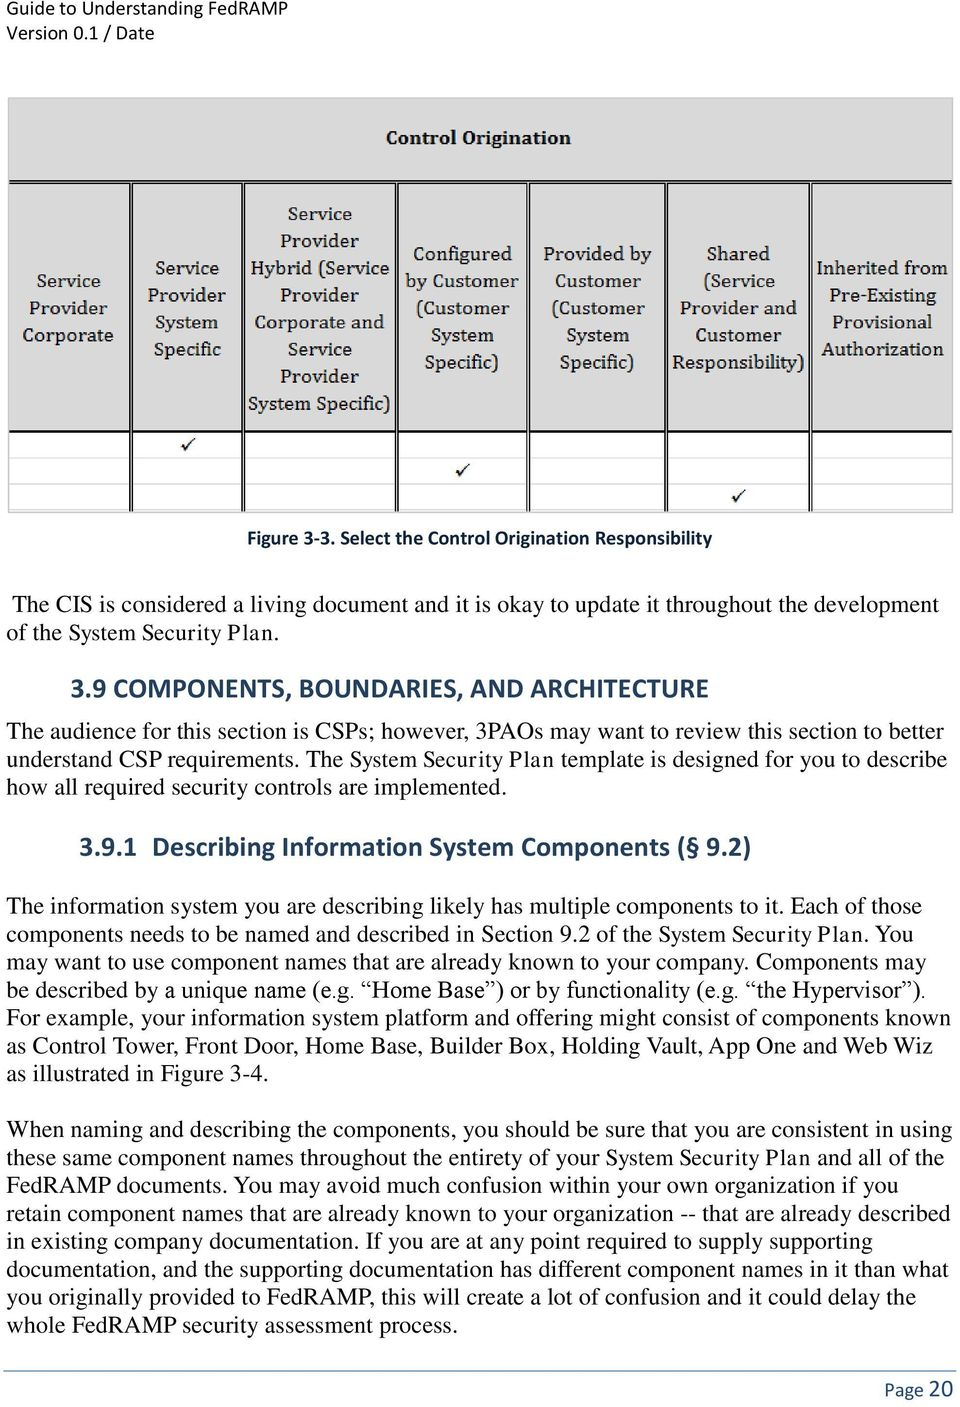 2) The information system you are describing likely has multiple components to it. Each of those components needs to be named and described in Section 9.2 of the System Security Plan.